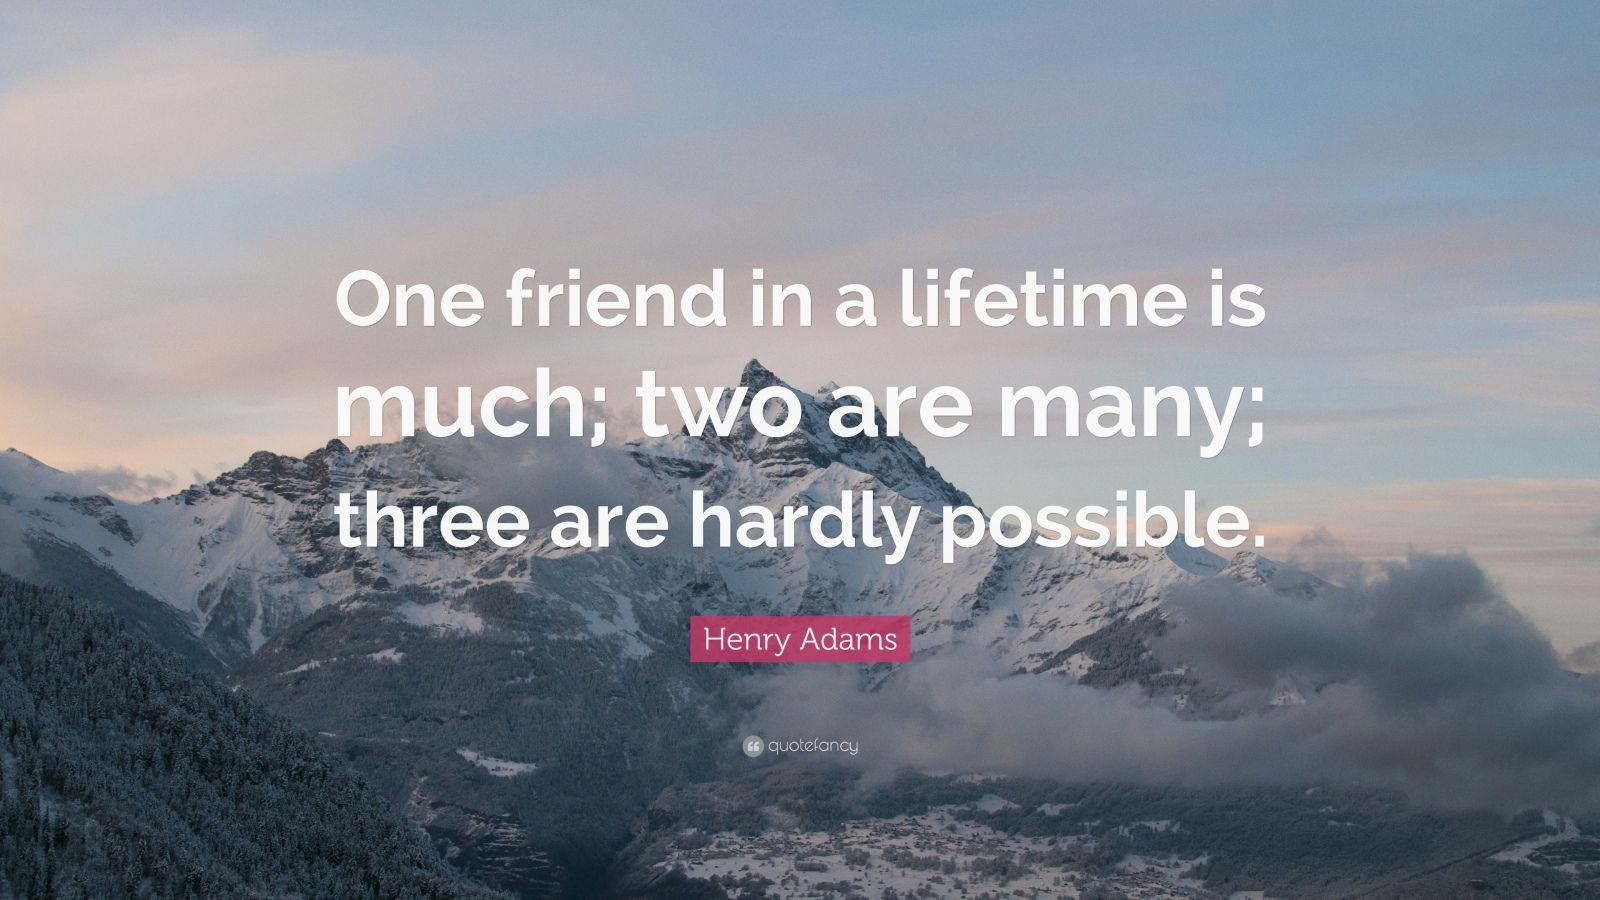 One friend in a lifetime is much; two are many; three are hardly possible.